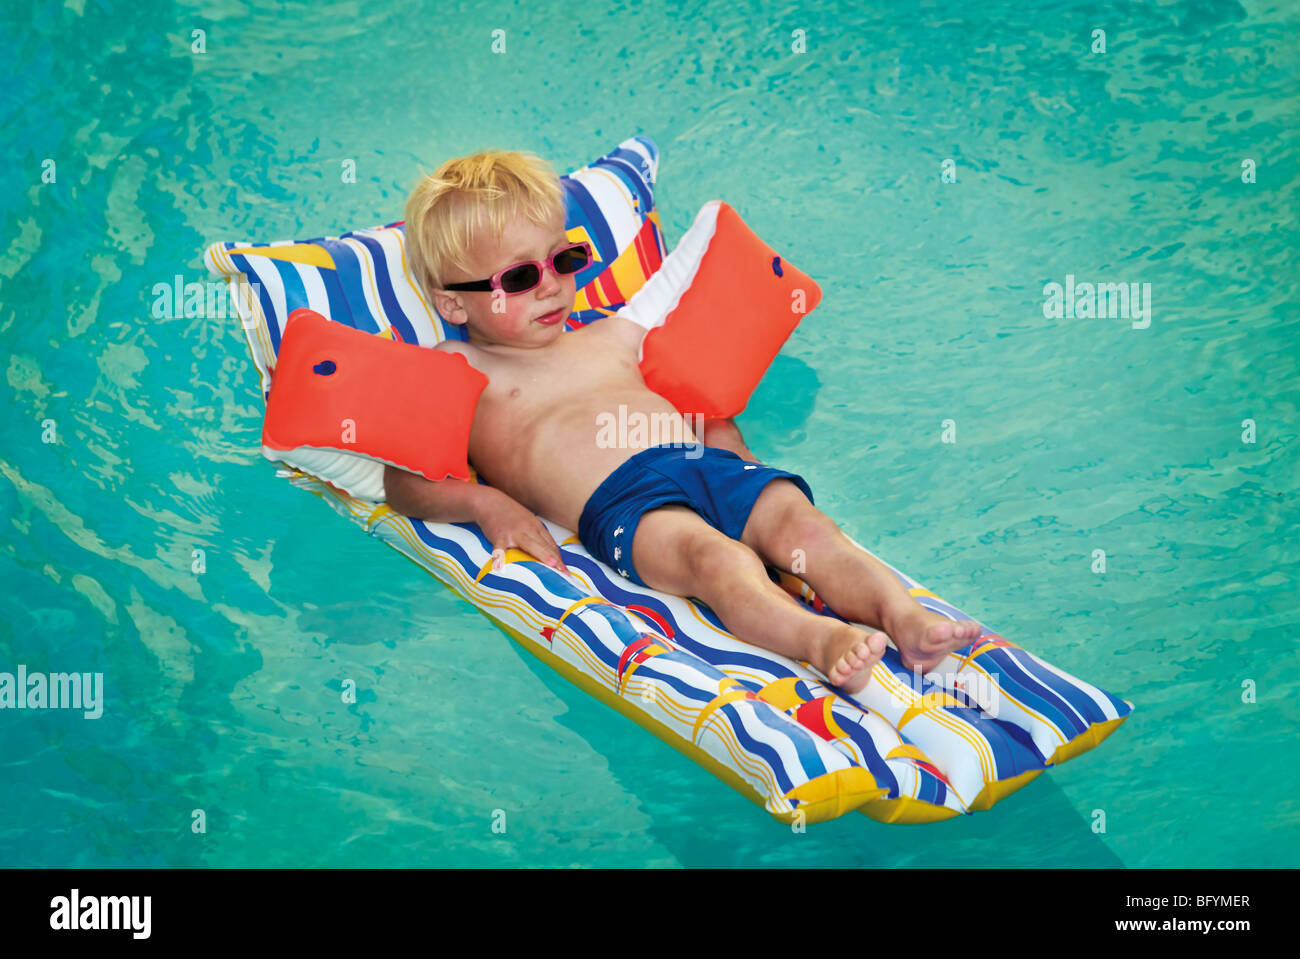 young boy lying on air bed floating in swimming pool BFYMER